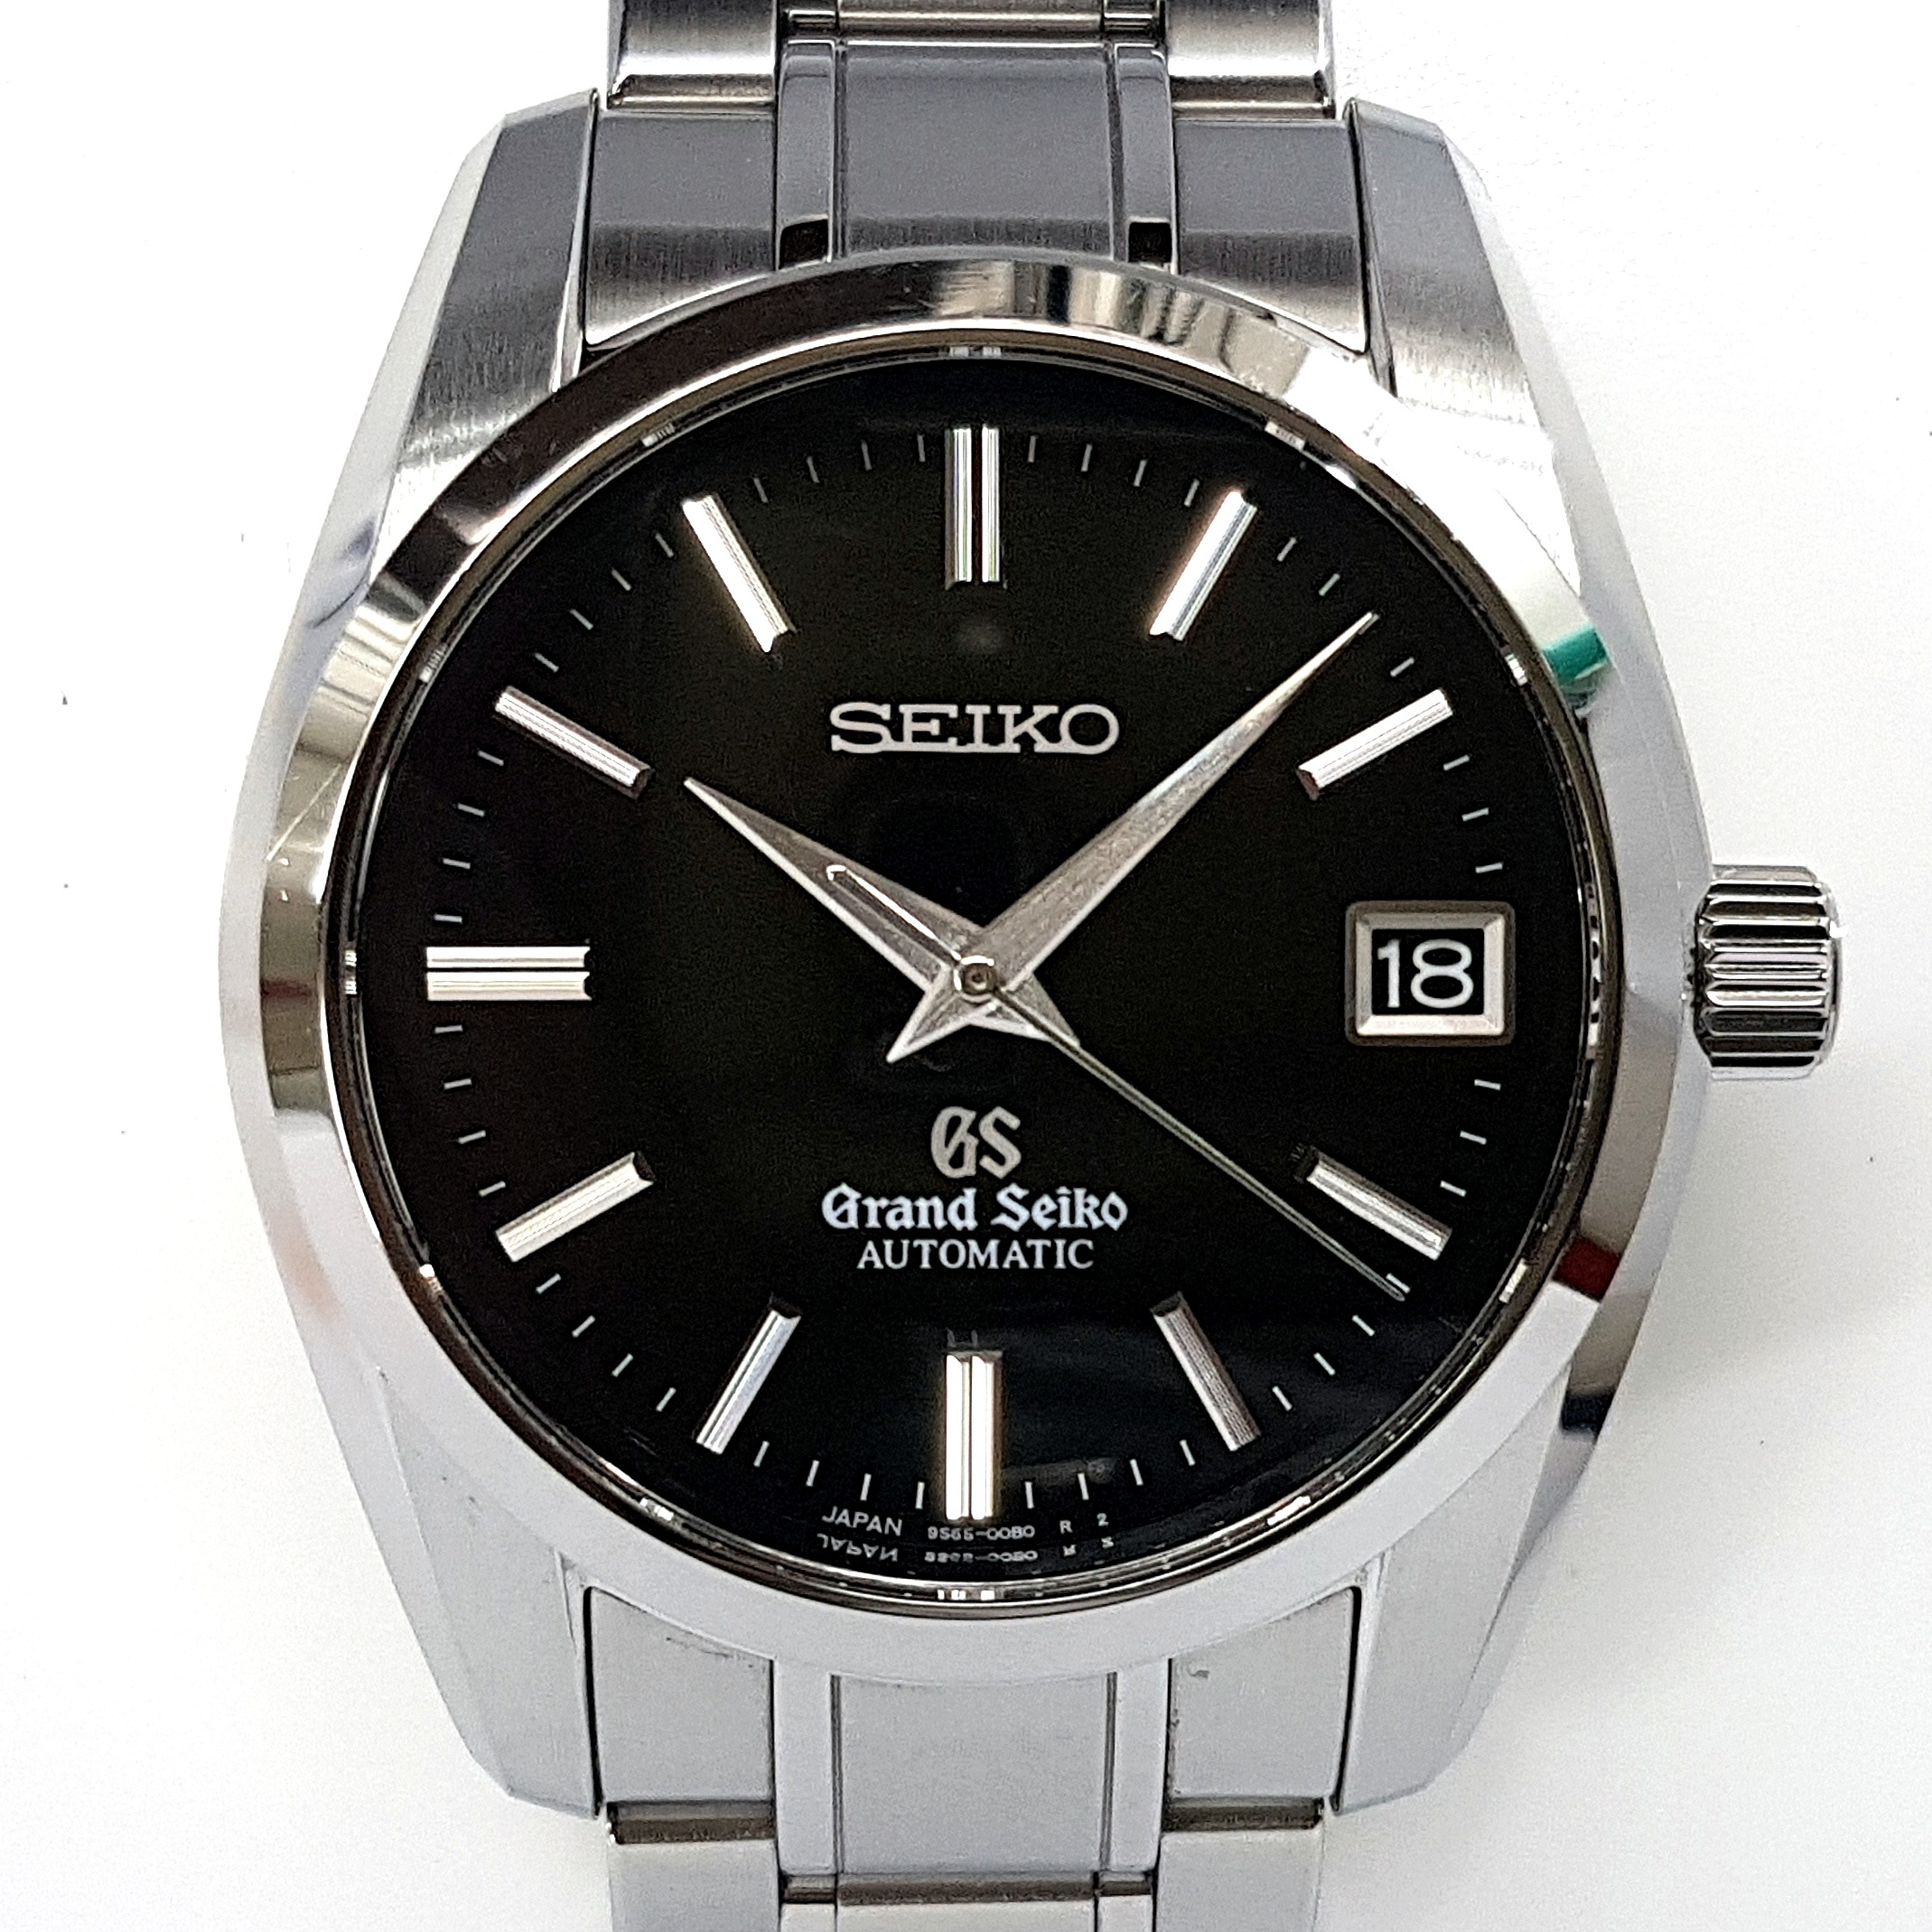 watch seiko grand supply delray products watches automatic